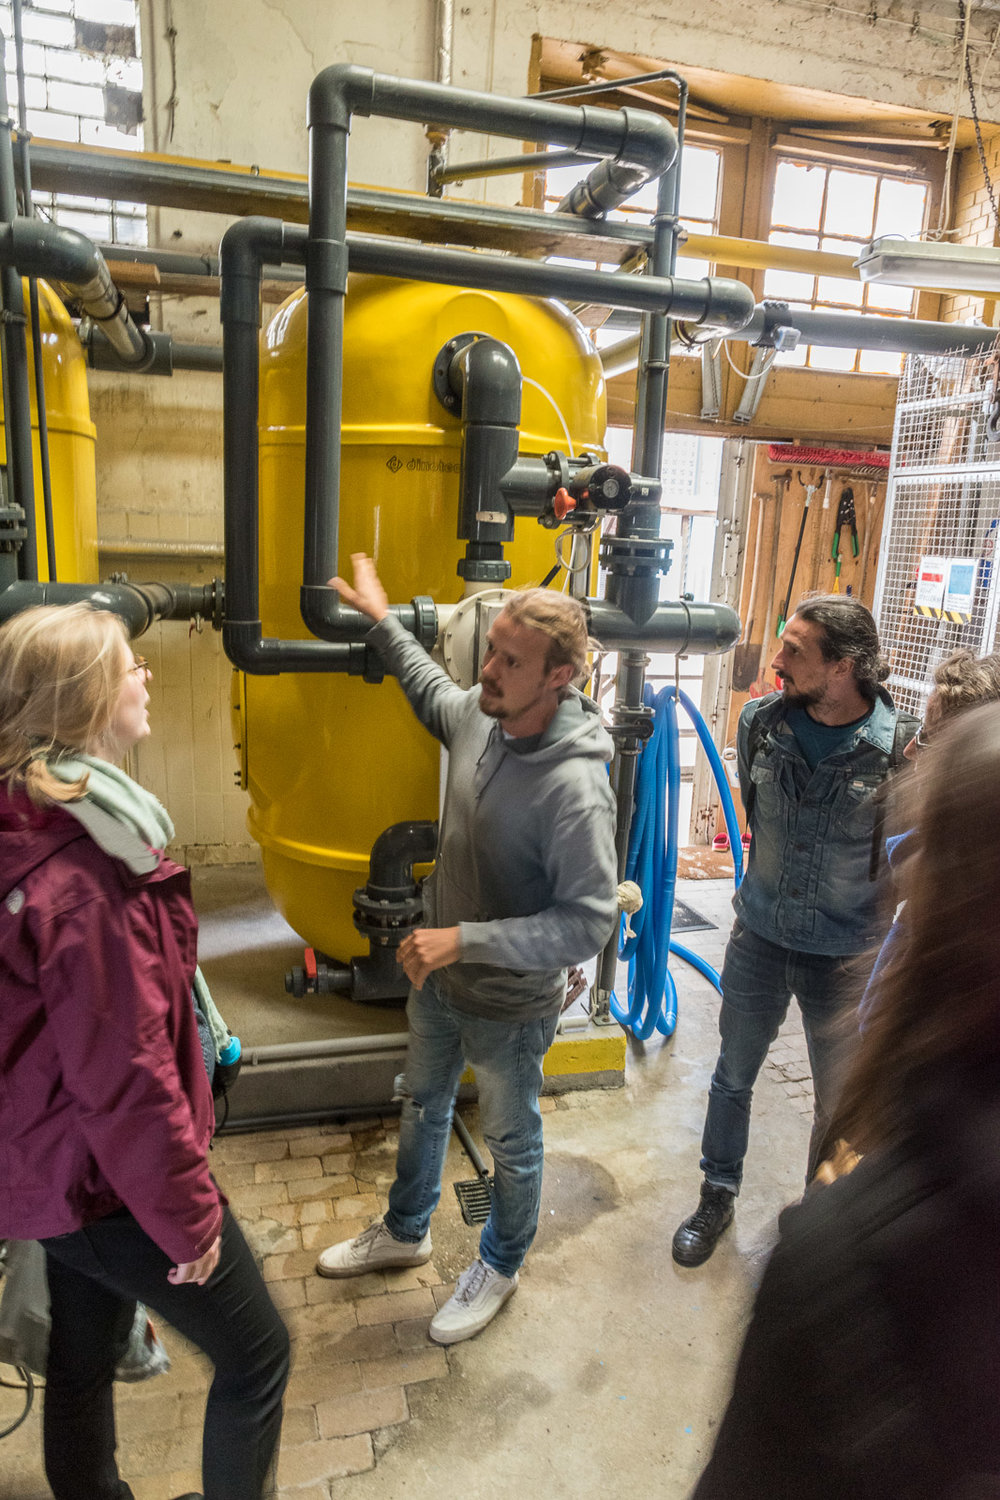 First we had a tour to the technical spaces. In yellow the huge sand filters.